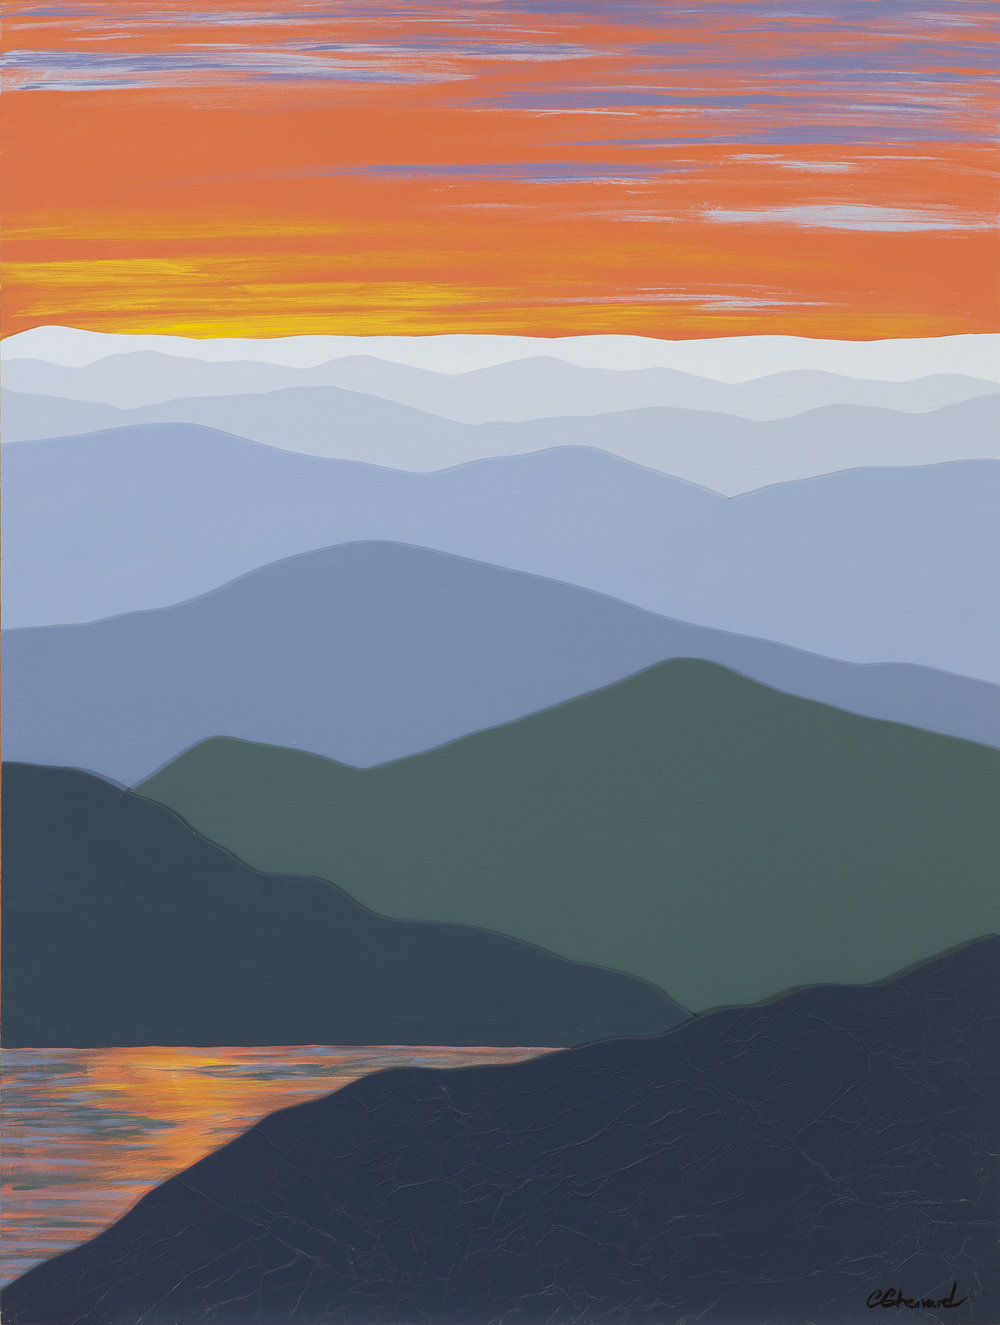 """""""Sunset Reflections 3D"""",  Acrylic on Layers of Wood,  18x24 inches,  $575. SOLD"""